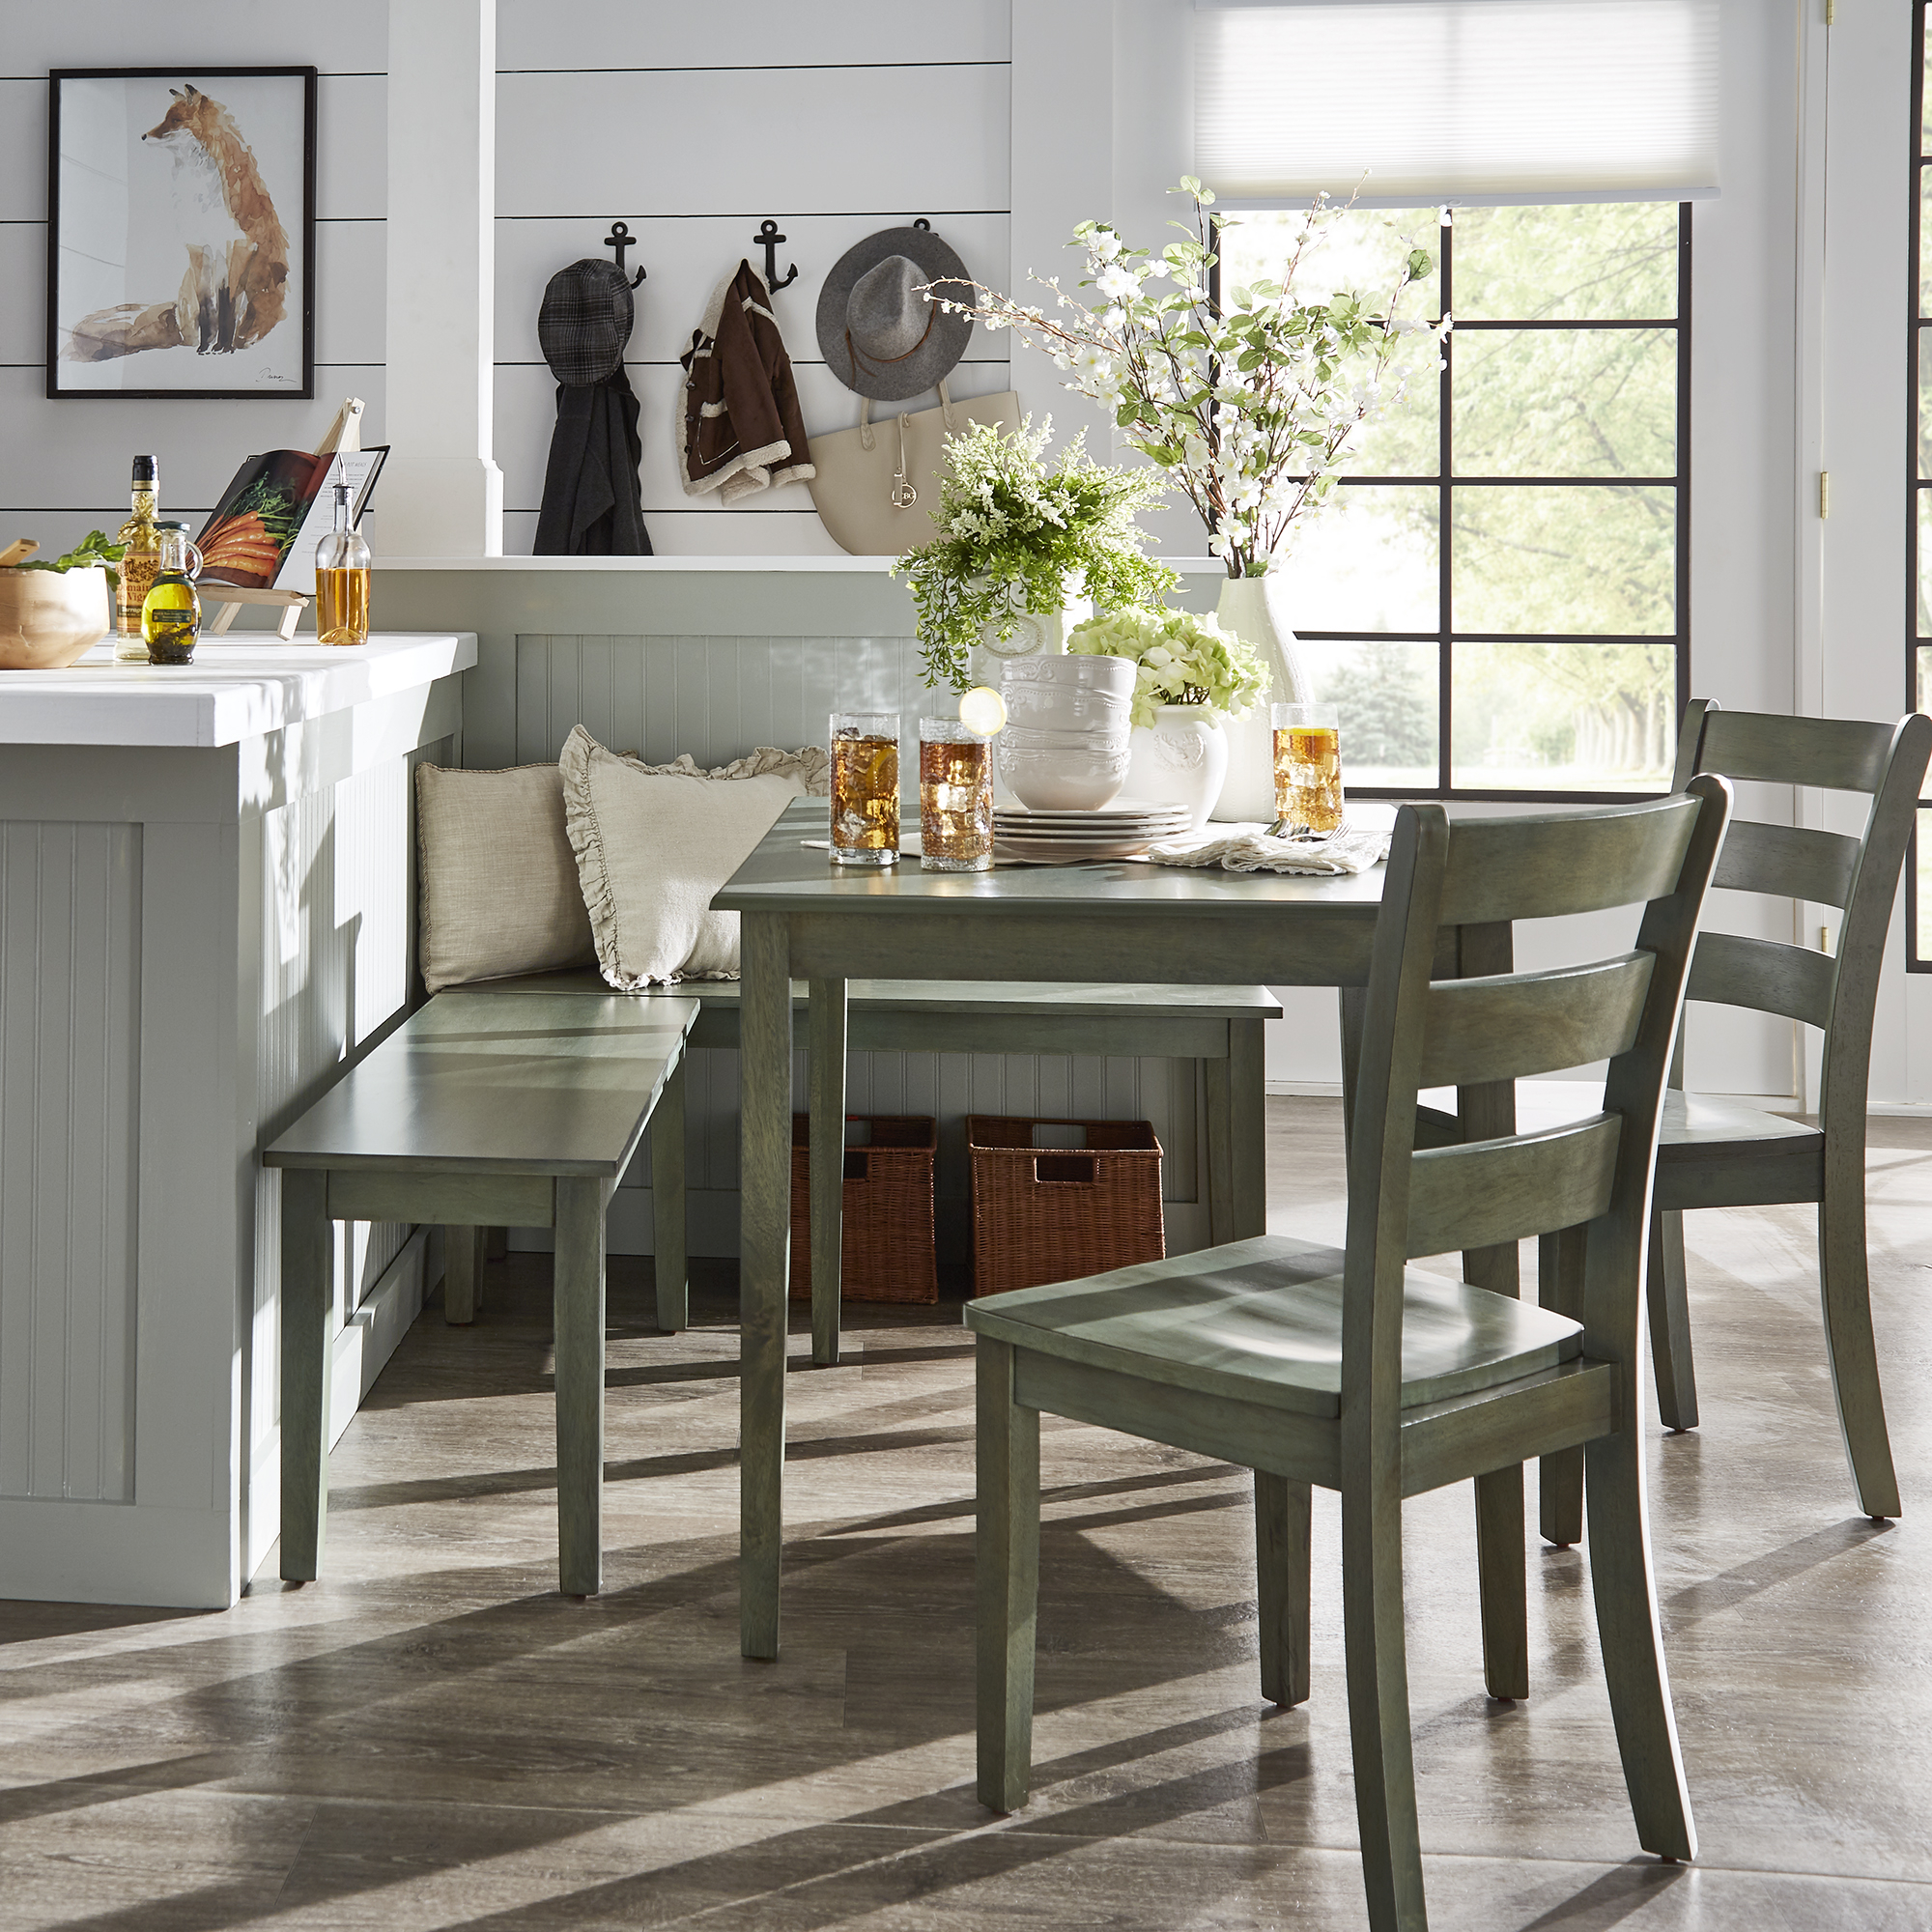 Inspiration about 5 Piece Breakfast Nook Dining Sets Regarding Preferred Weston Home Lexington 5 Piece Breakfast Nook Dining Set, Rectangular (#6 of 20)